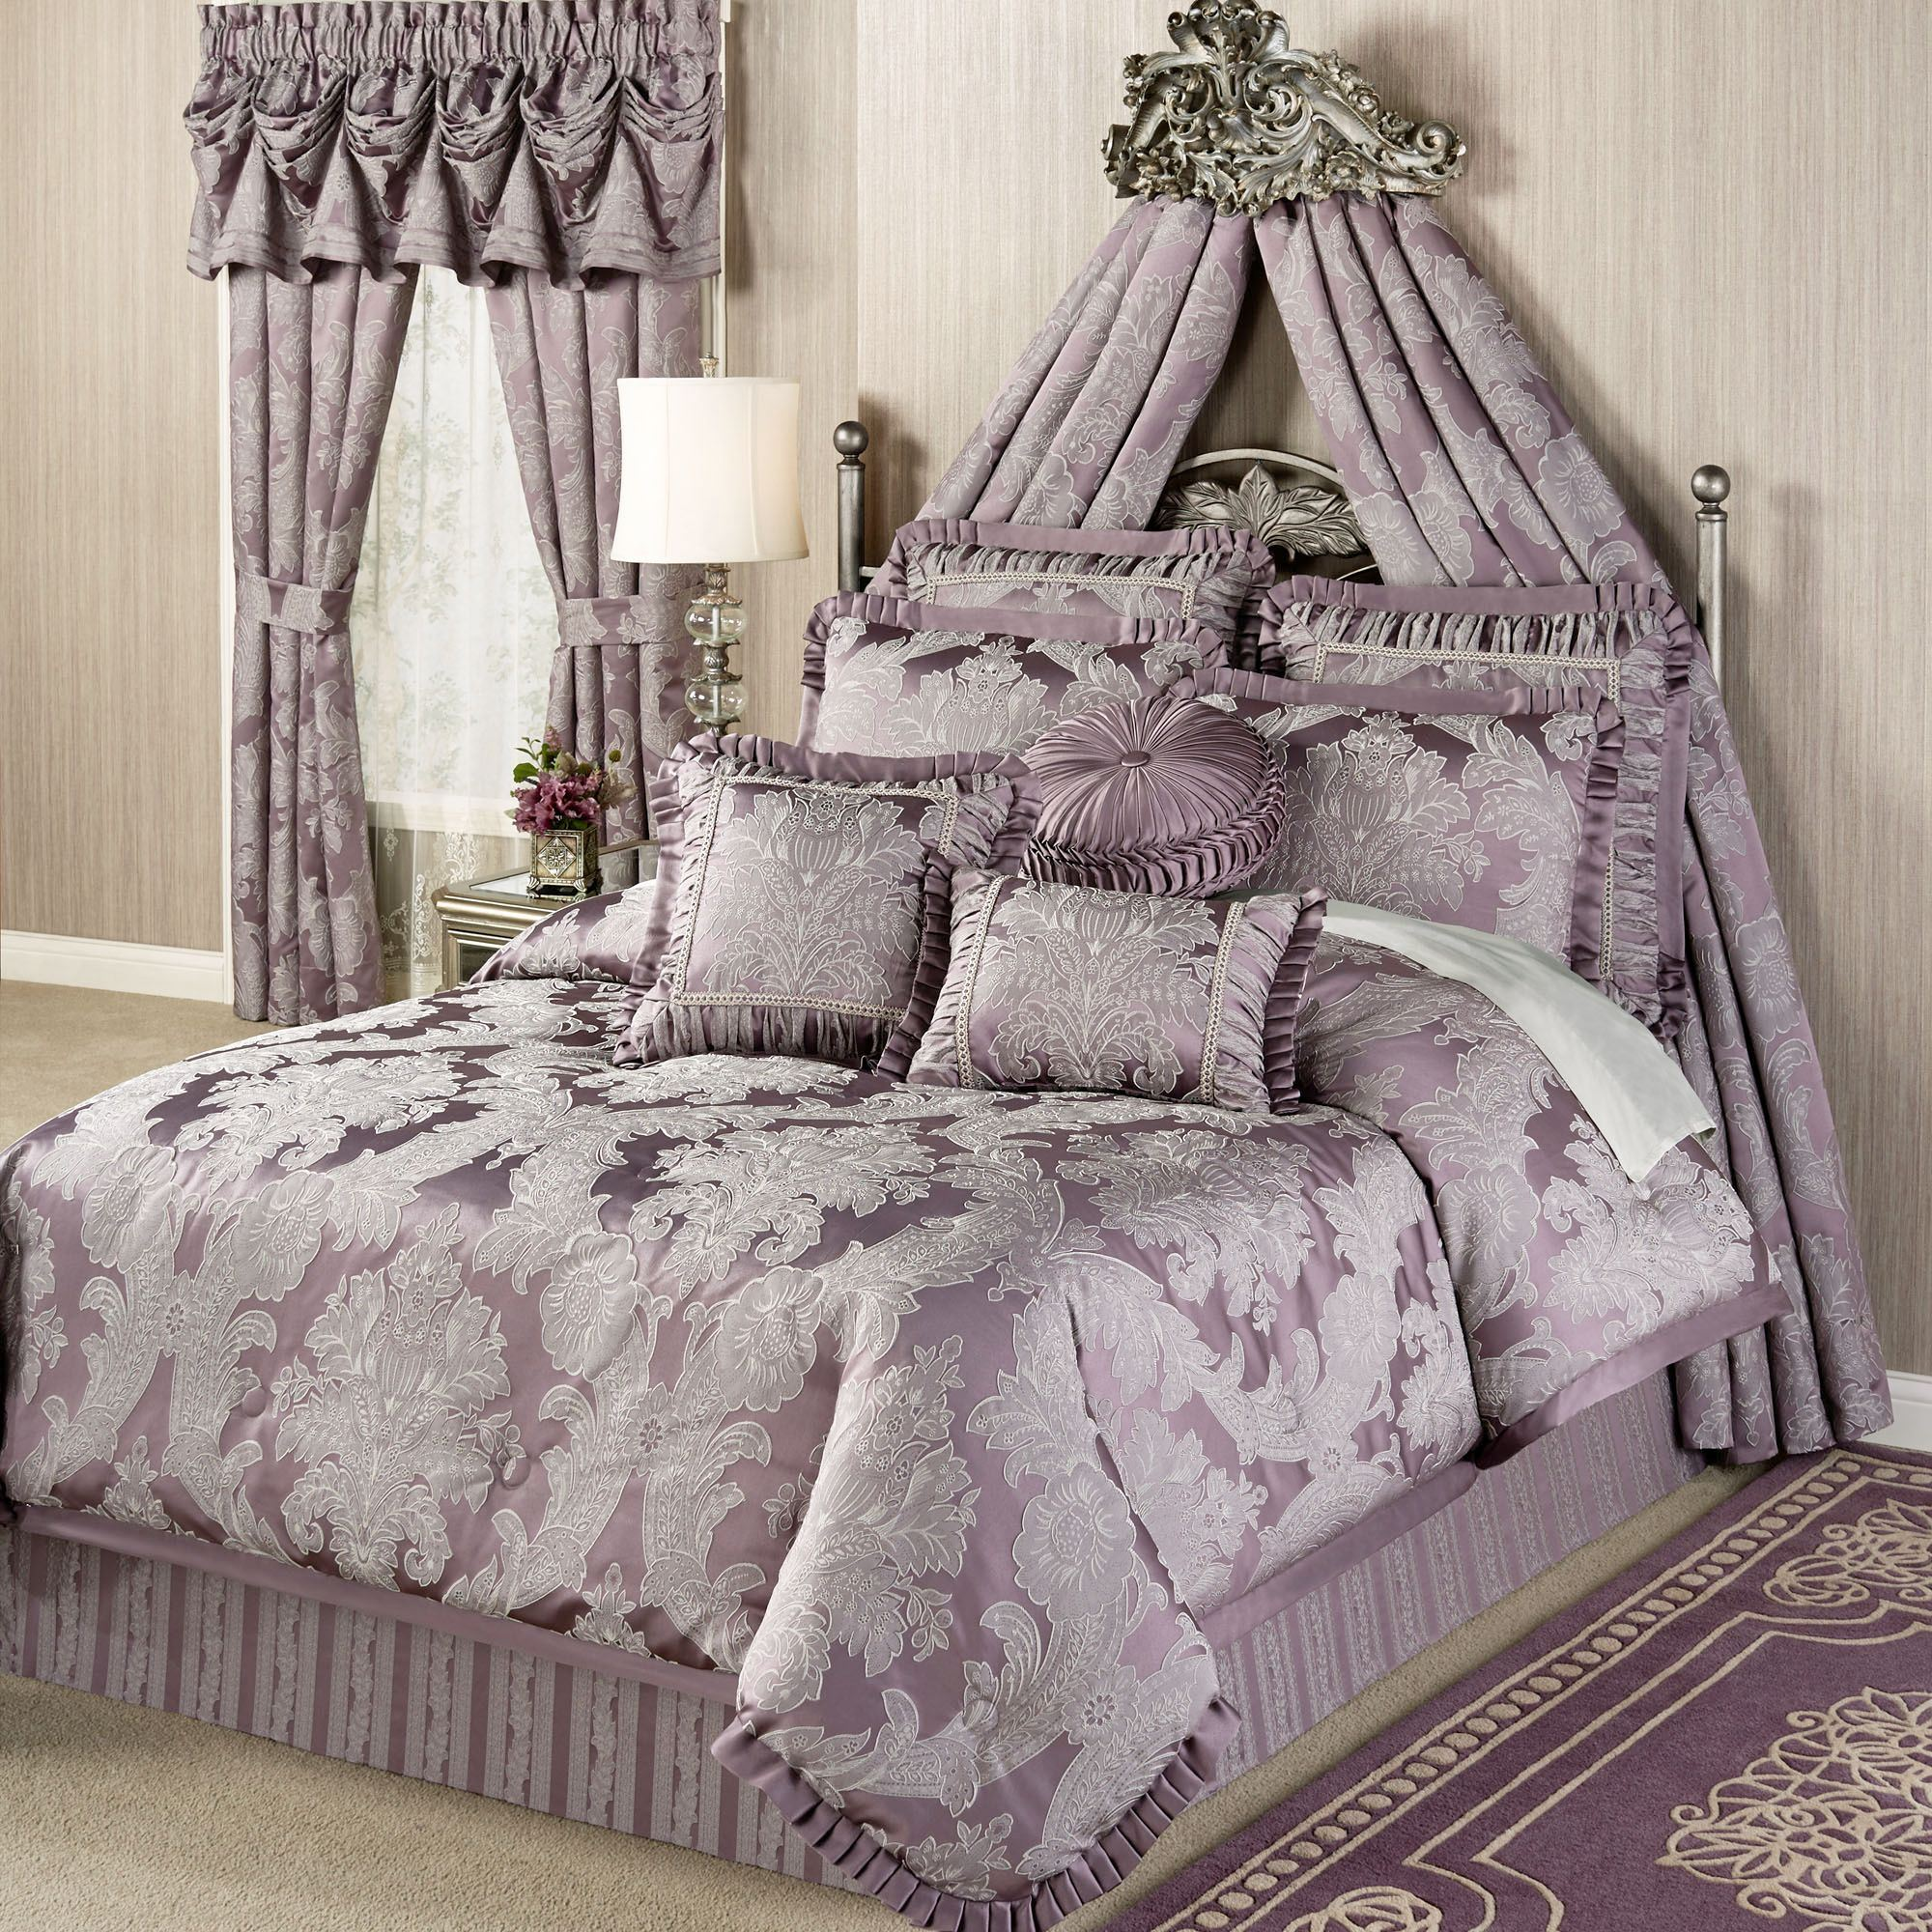 Ambience Damask forter Bedding